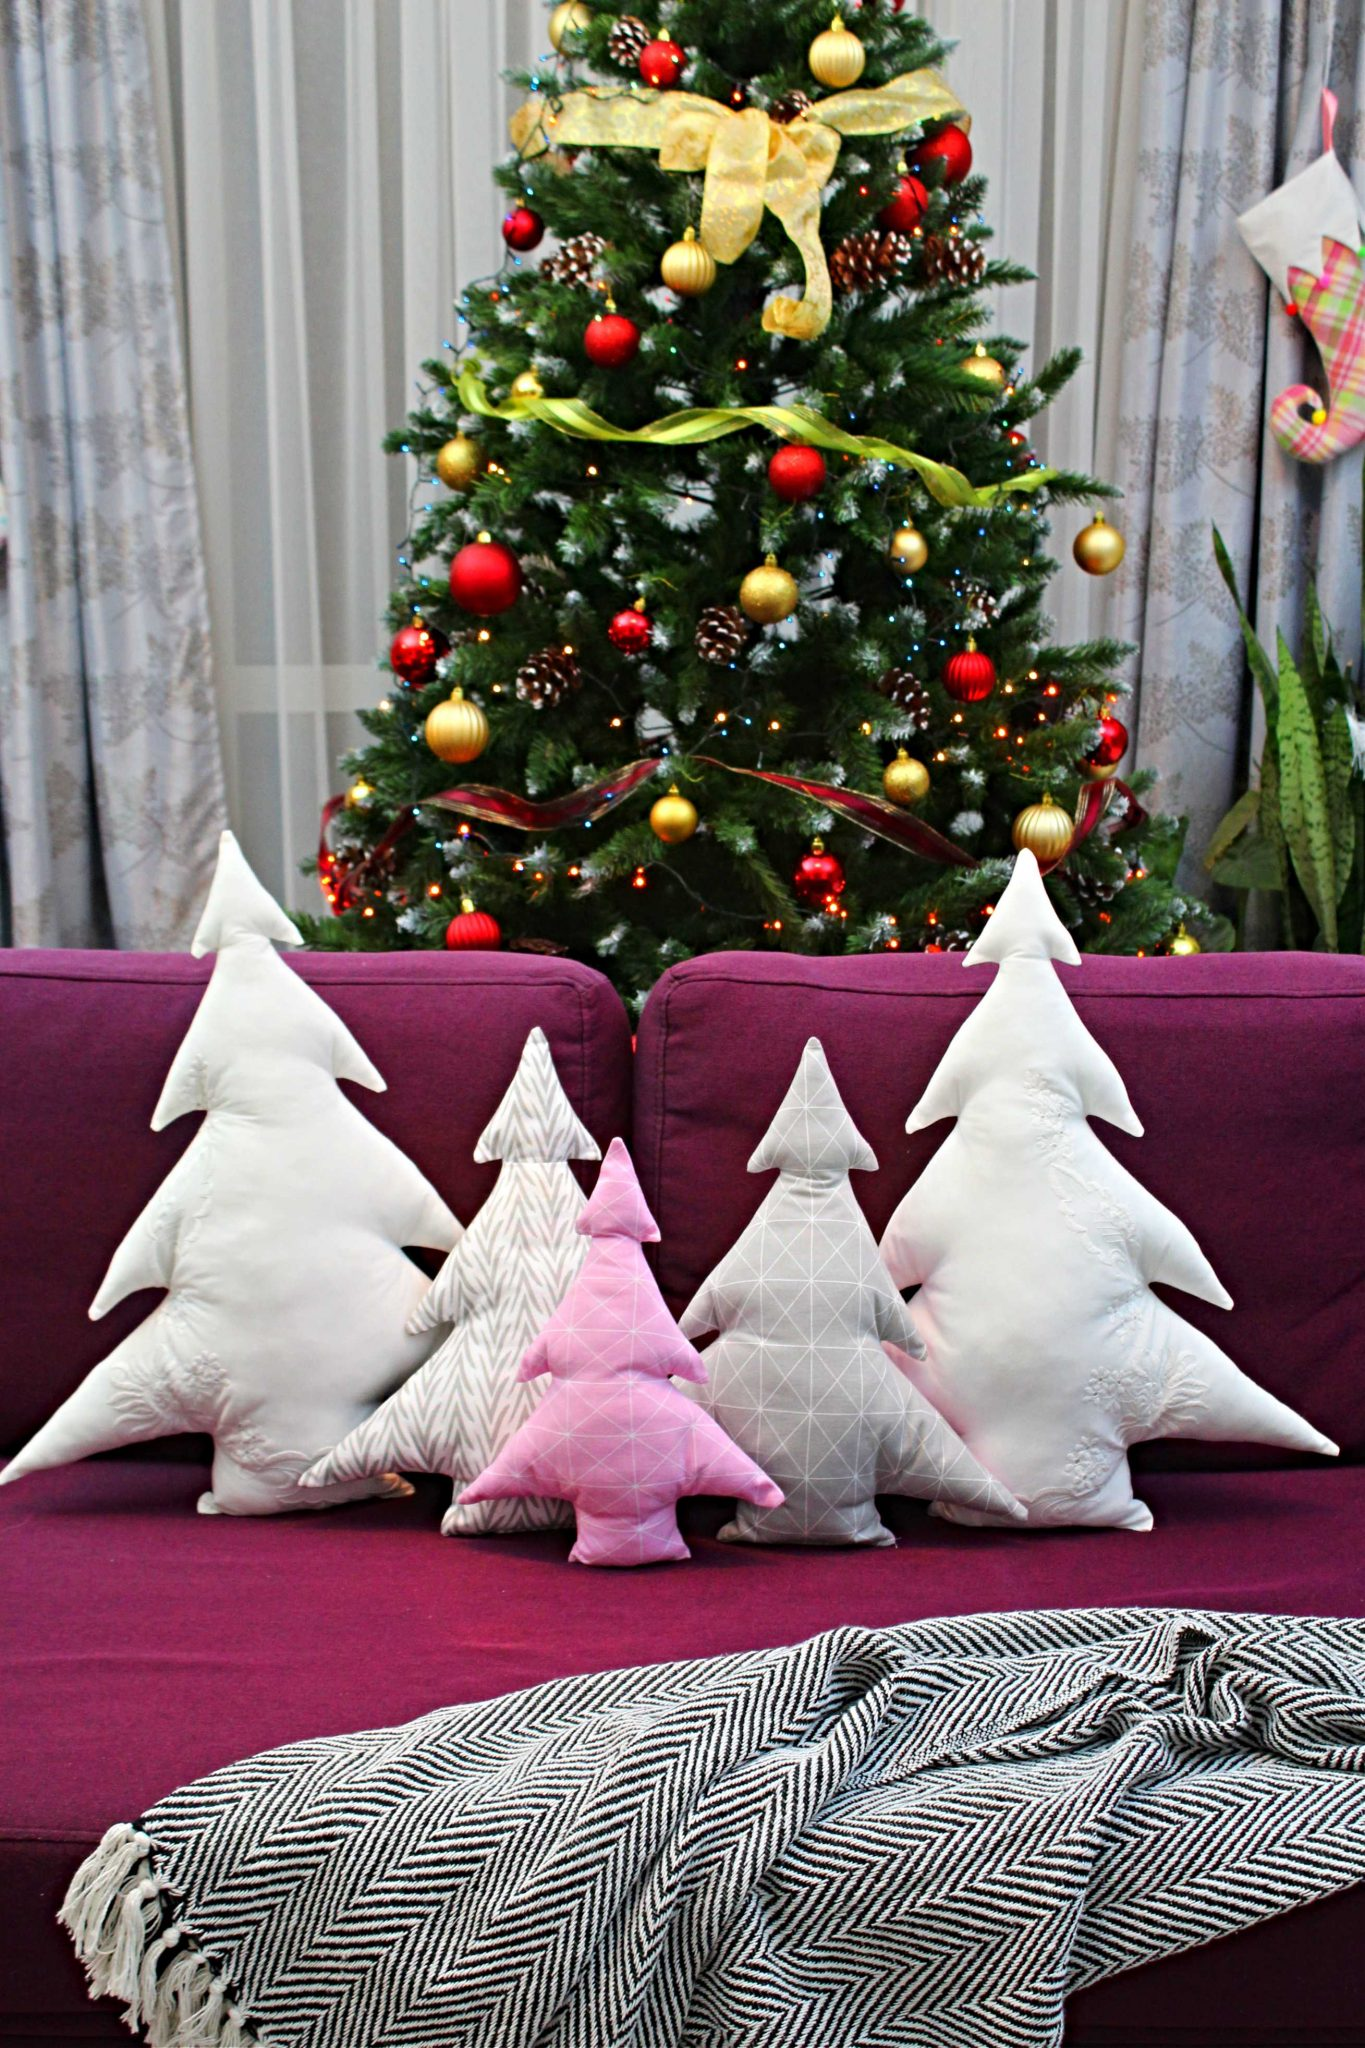 Christmas decorative pillows. Holiday pillows